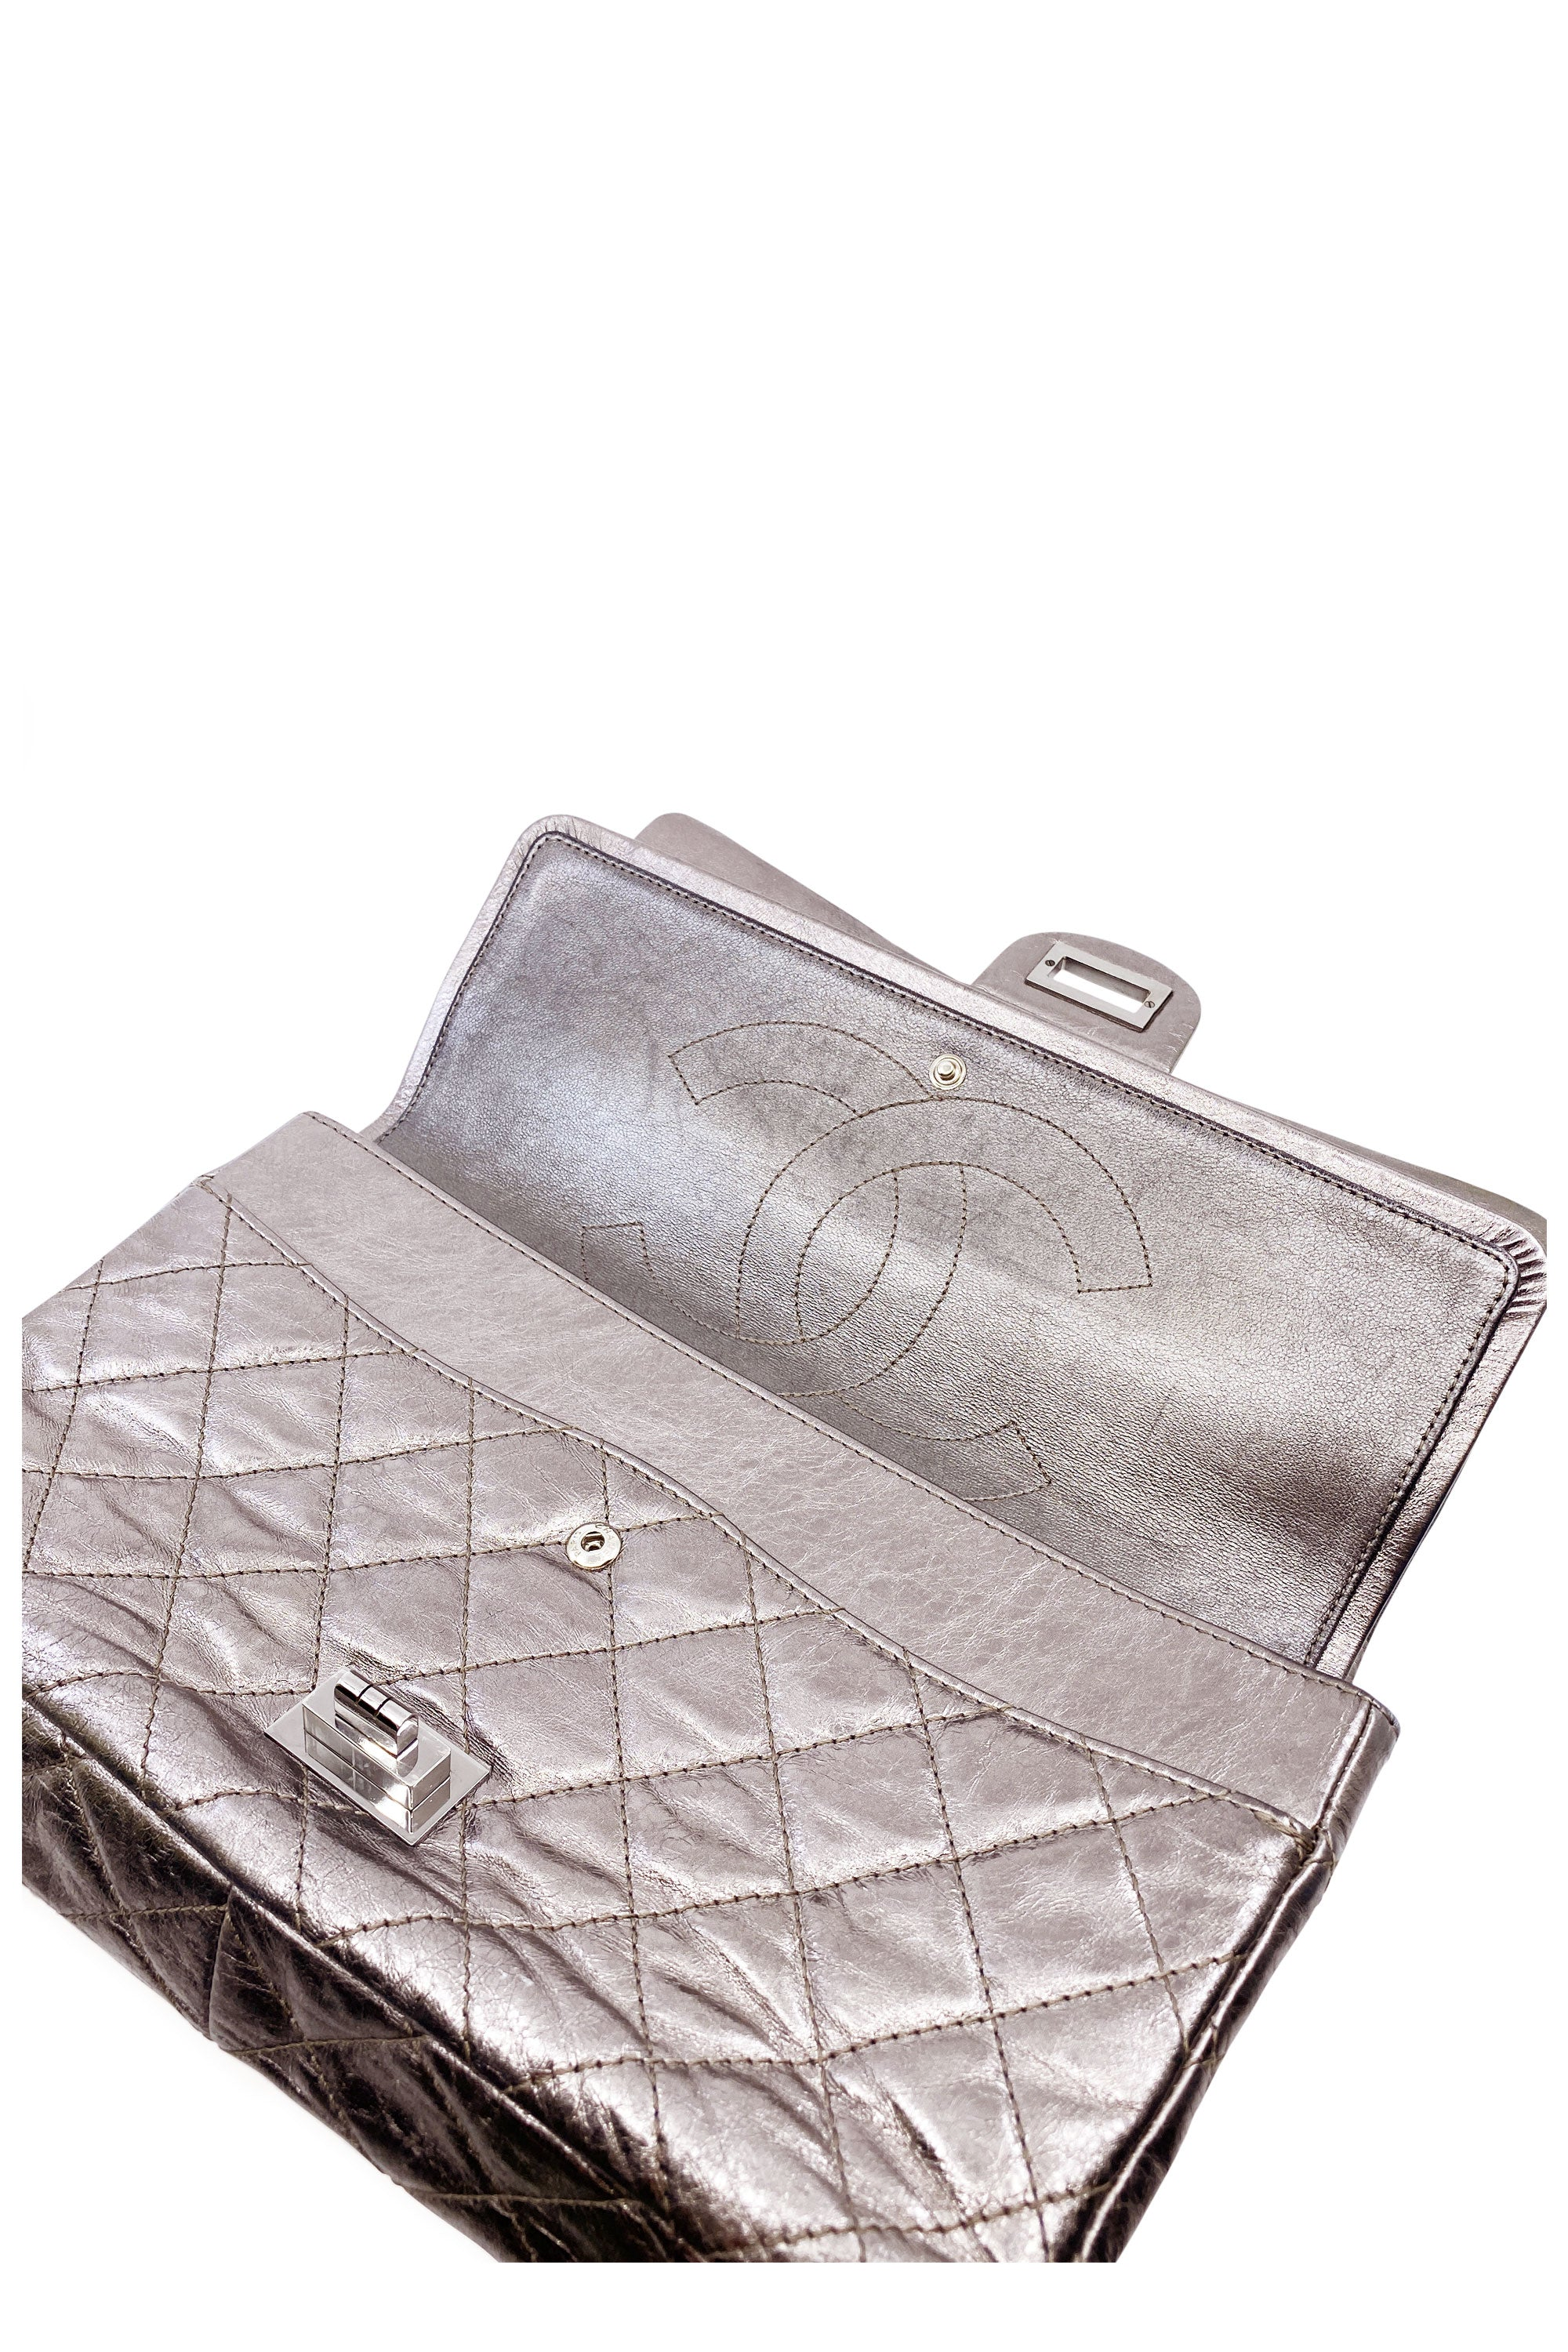 CHANEL 2.55 Reissue Silver